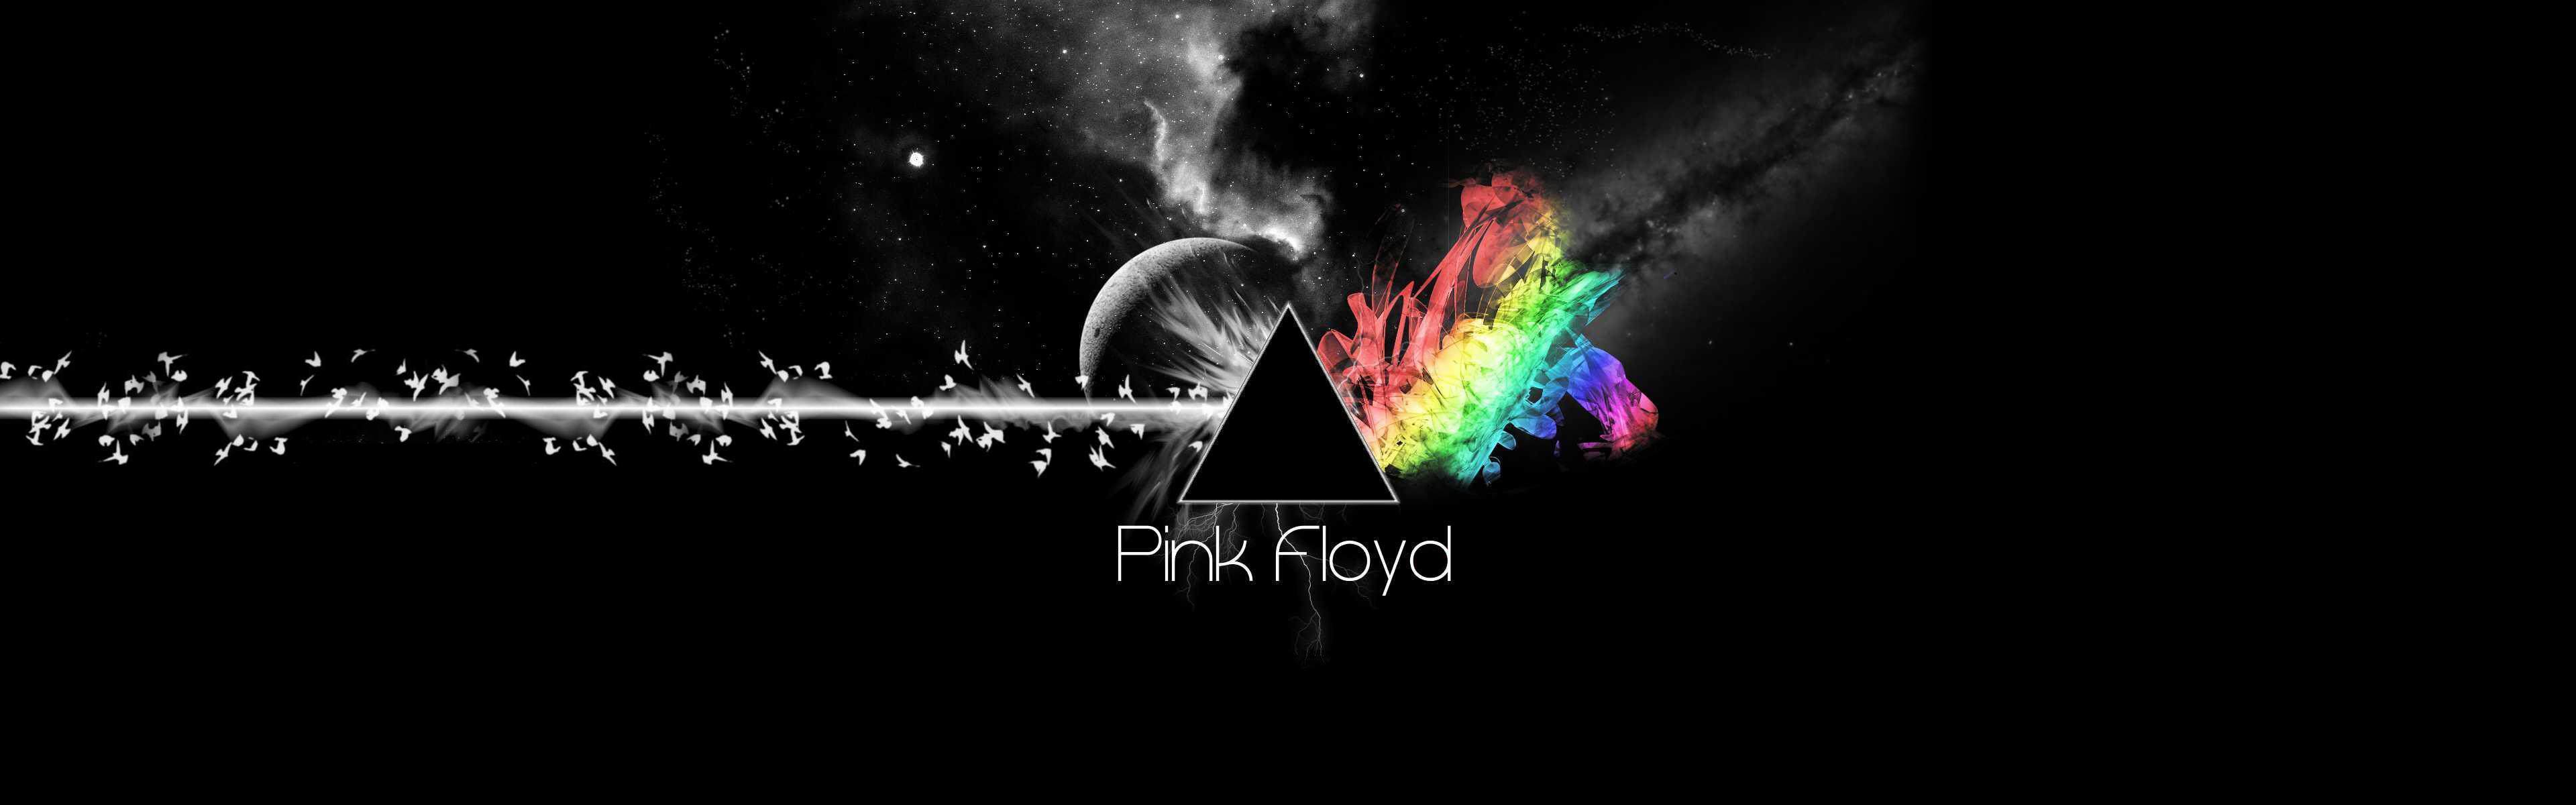 Pink Floyd Wallpaper and Pictures Photo Pink Floyd Wallpaper 95jpg 3840x1200